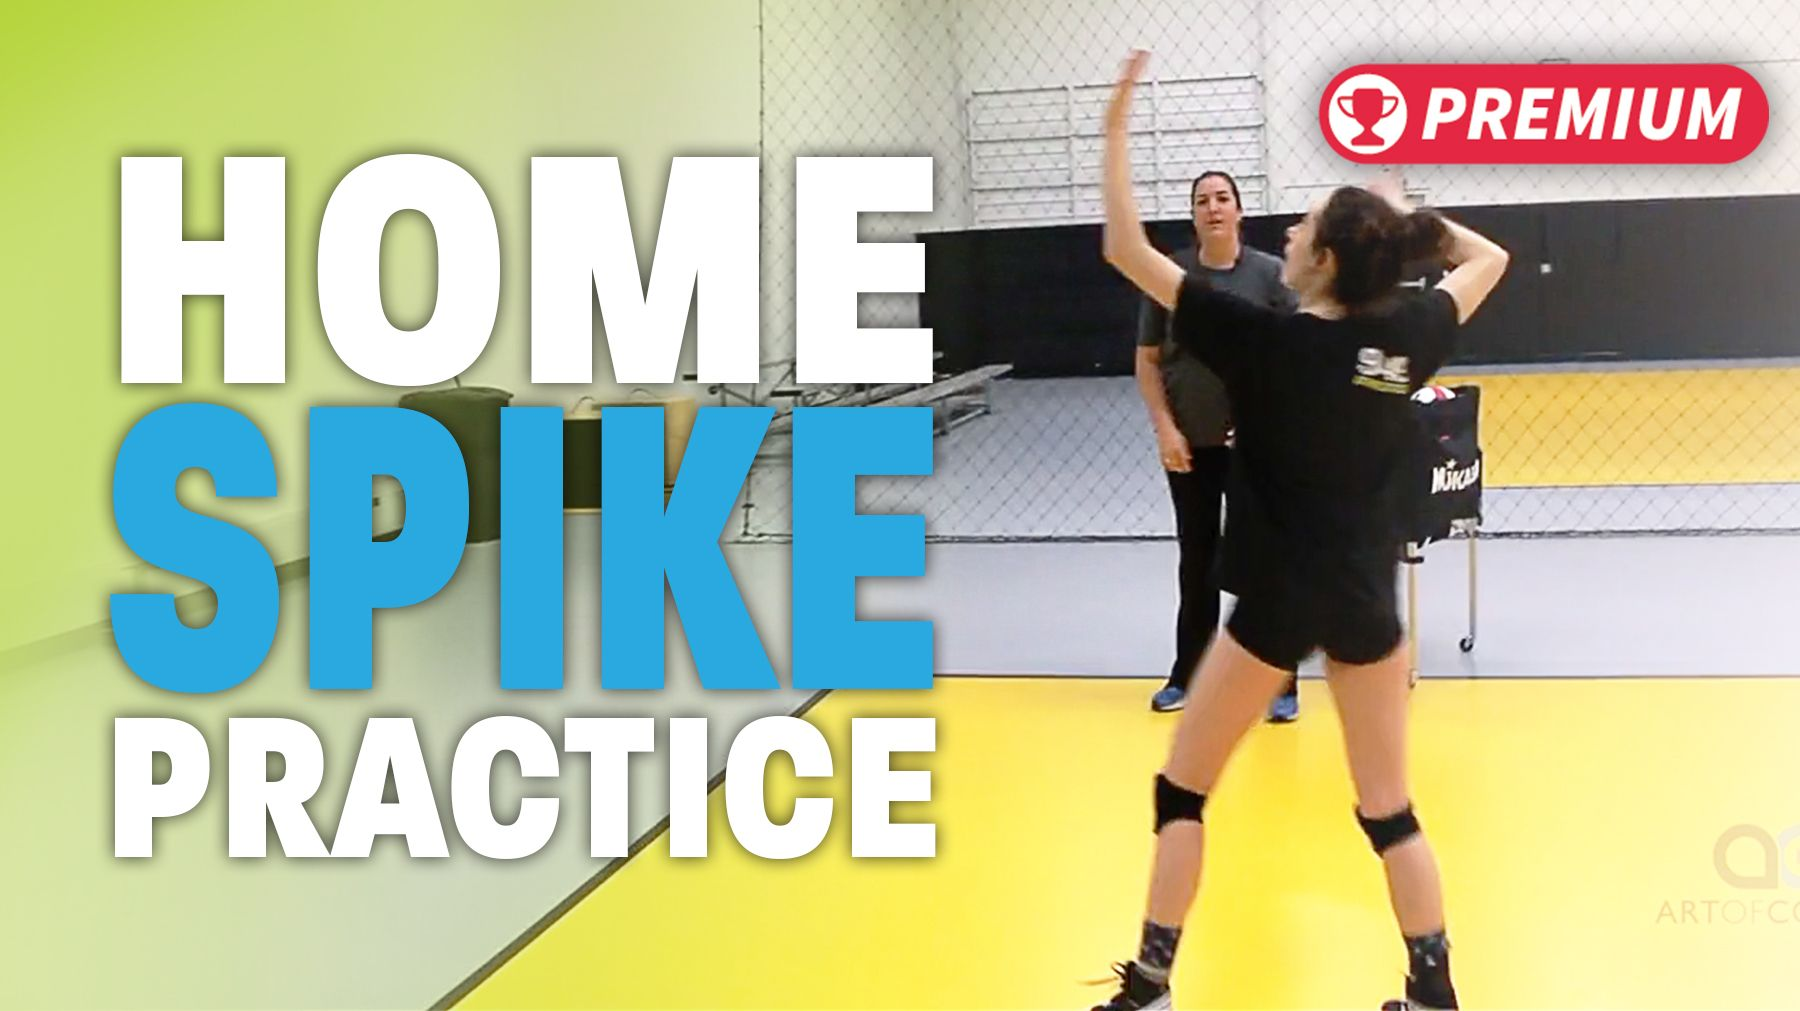 Cary Wallin Home Spiking Practice Coaching Volleyball Volleyball Workouts Volleyball Practice